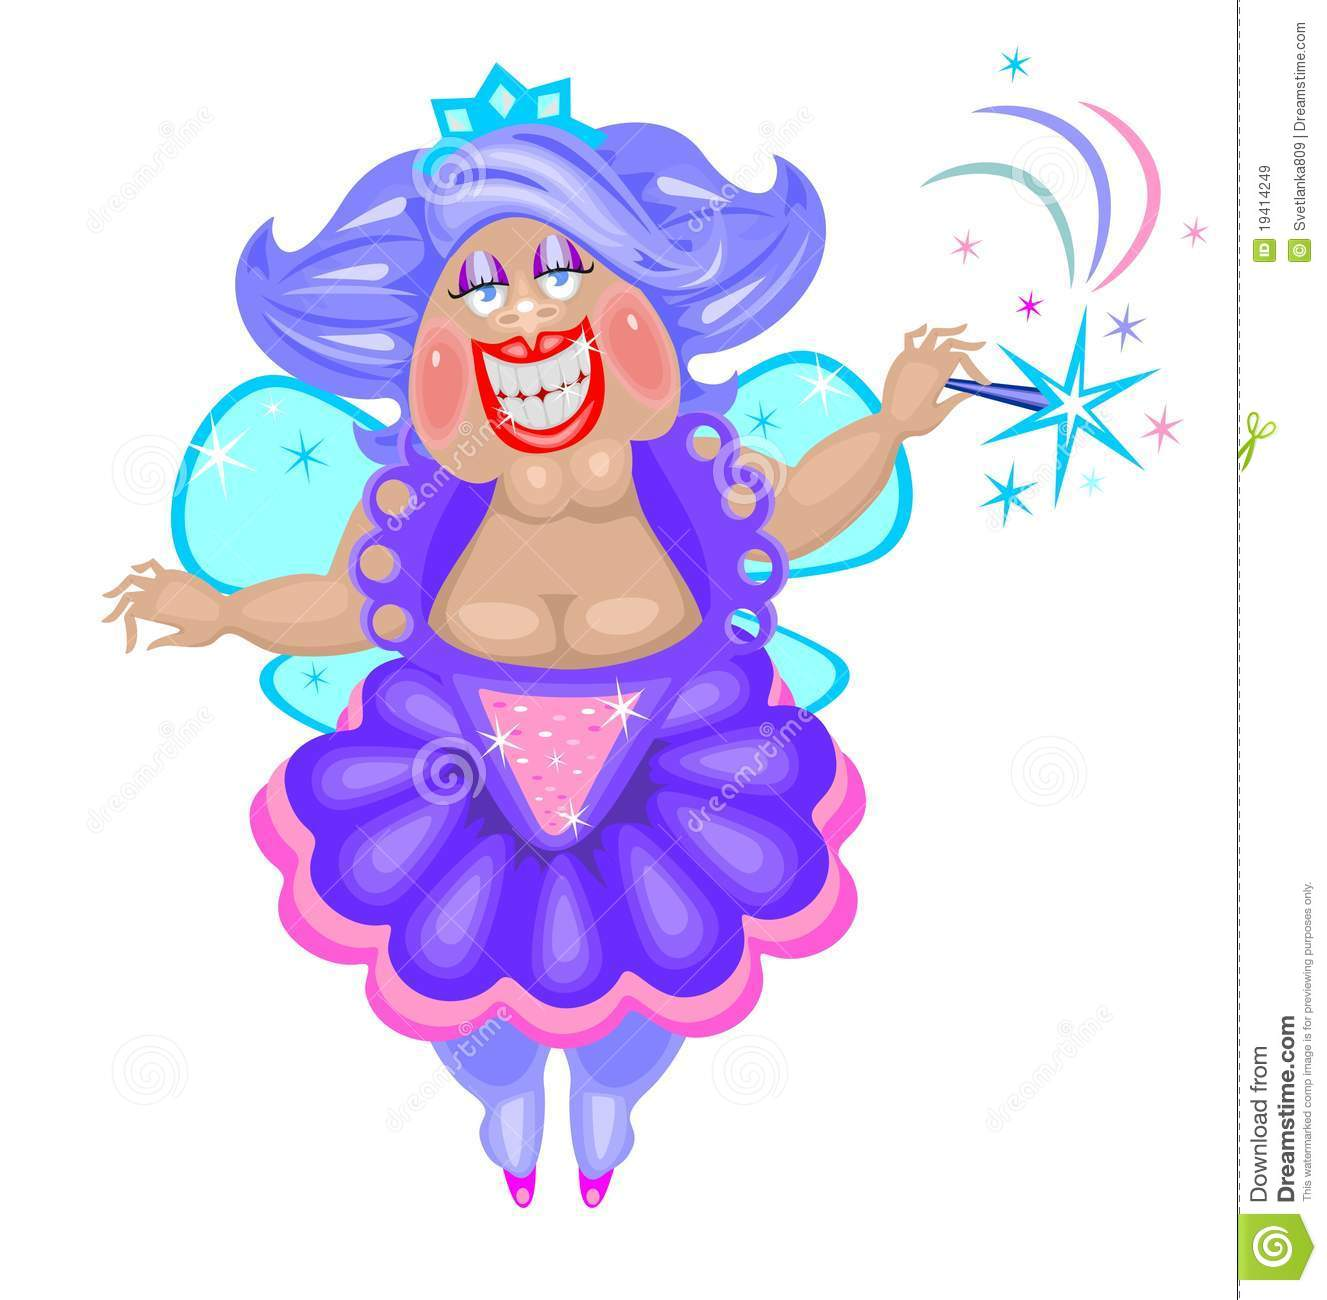 Funny Fat Fairy Royalty Free Stock Images - Image: 19414249